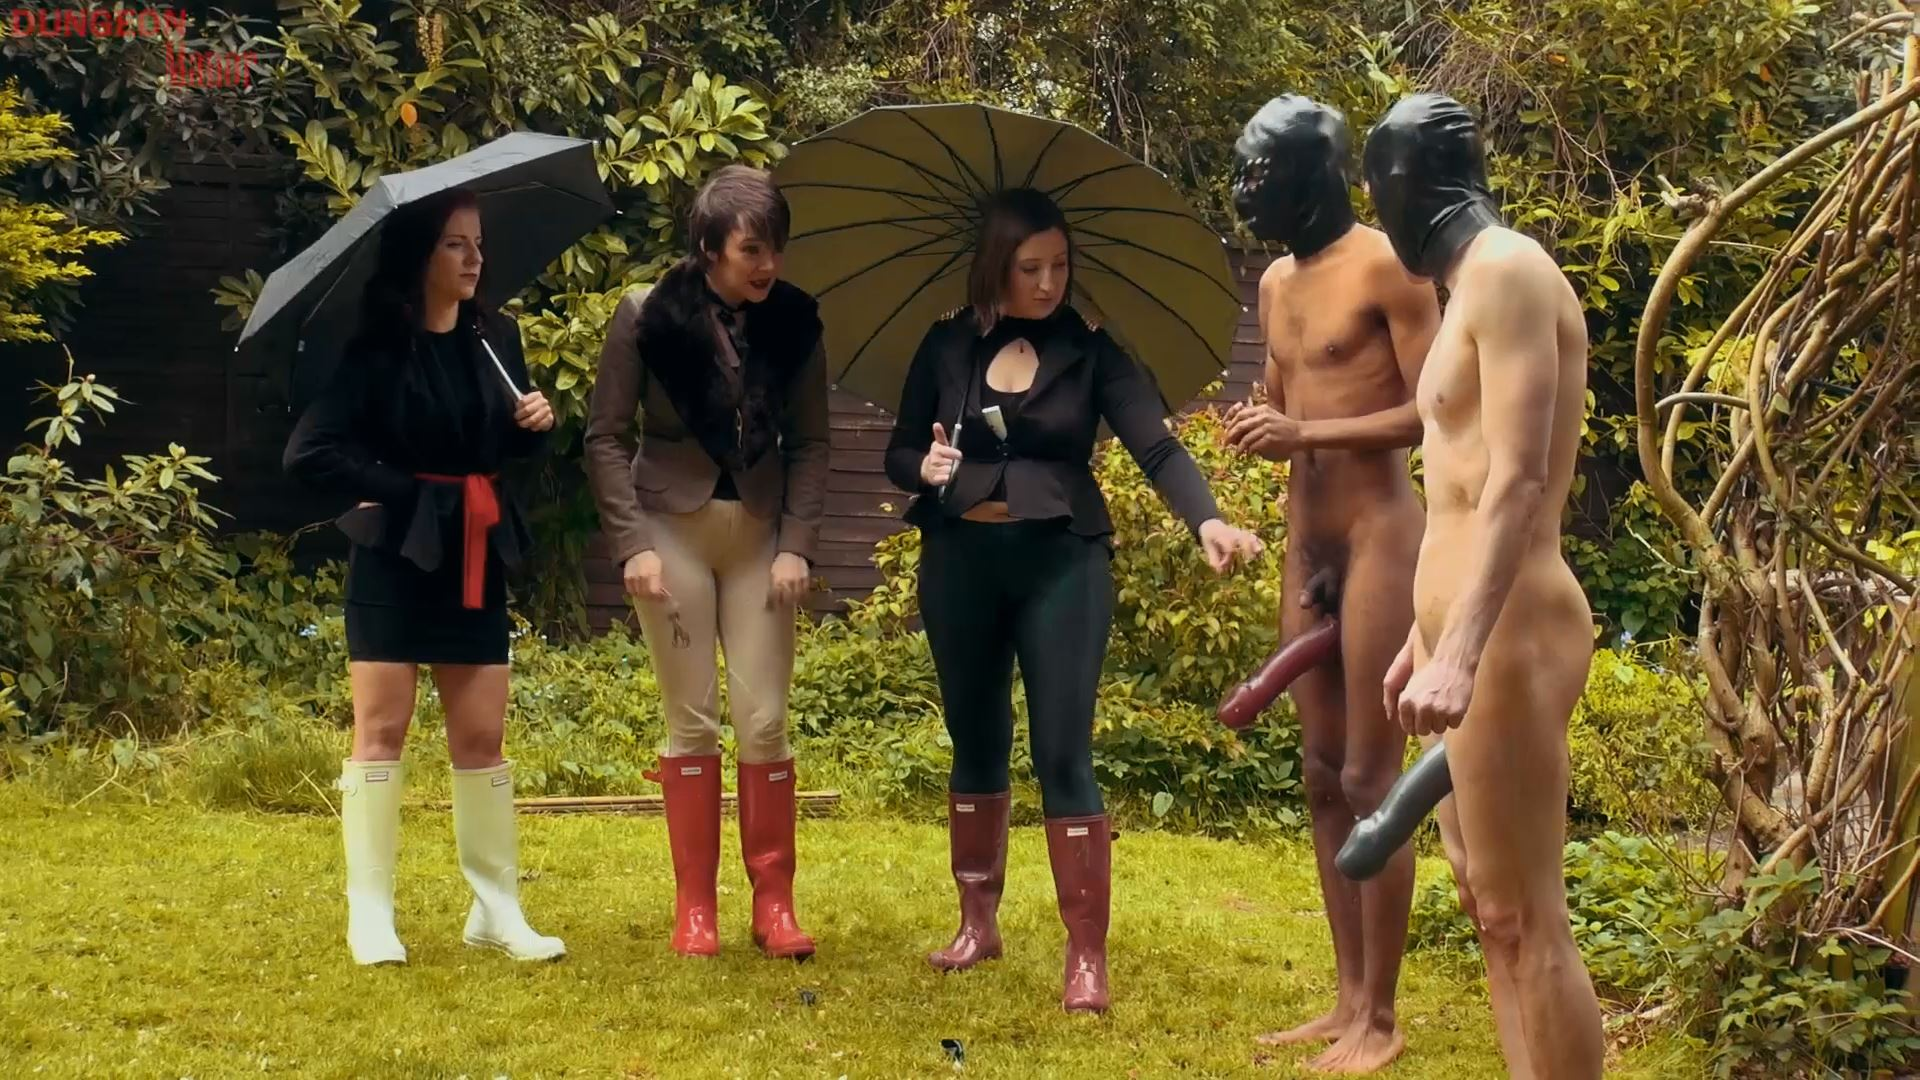 A dungeon Manor Production 389 - MISTRESS EVILYNE - FULL HD/1080p/MP4